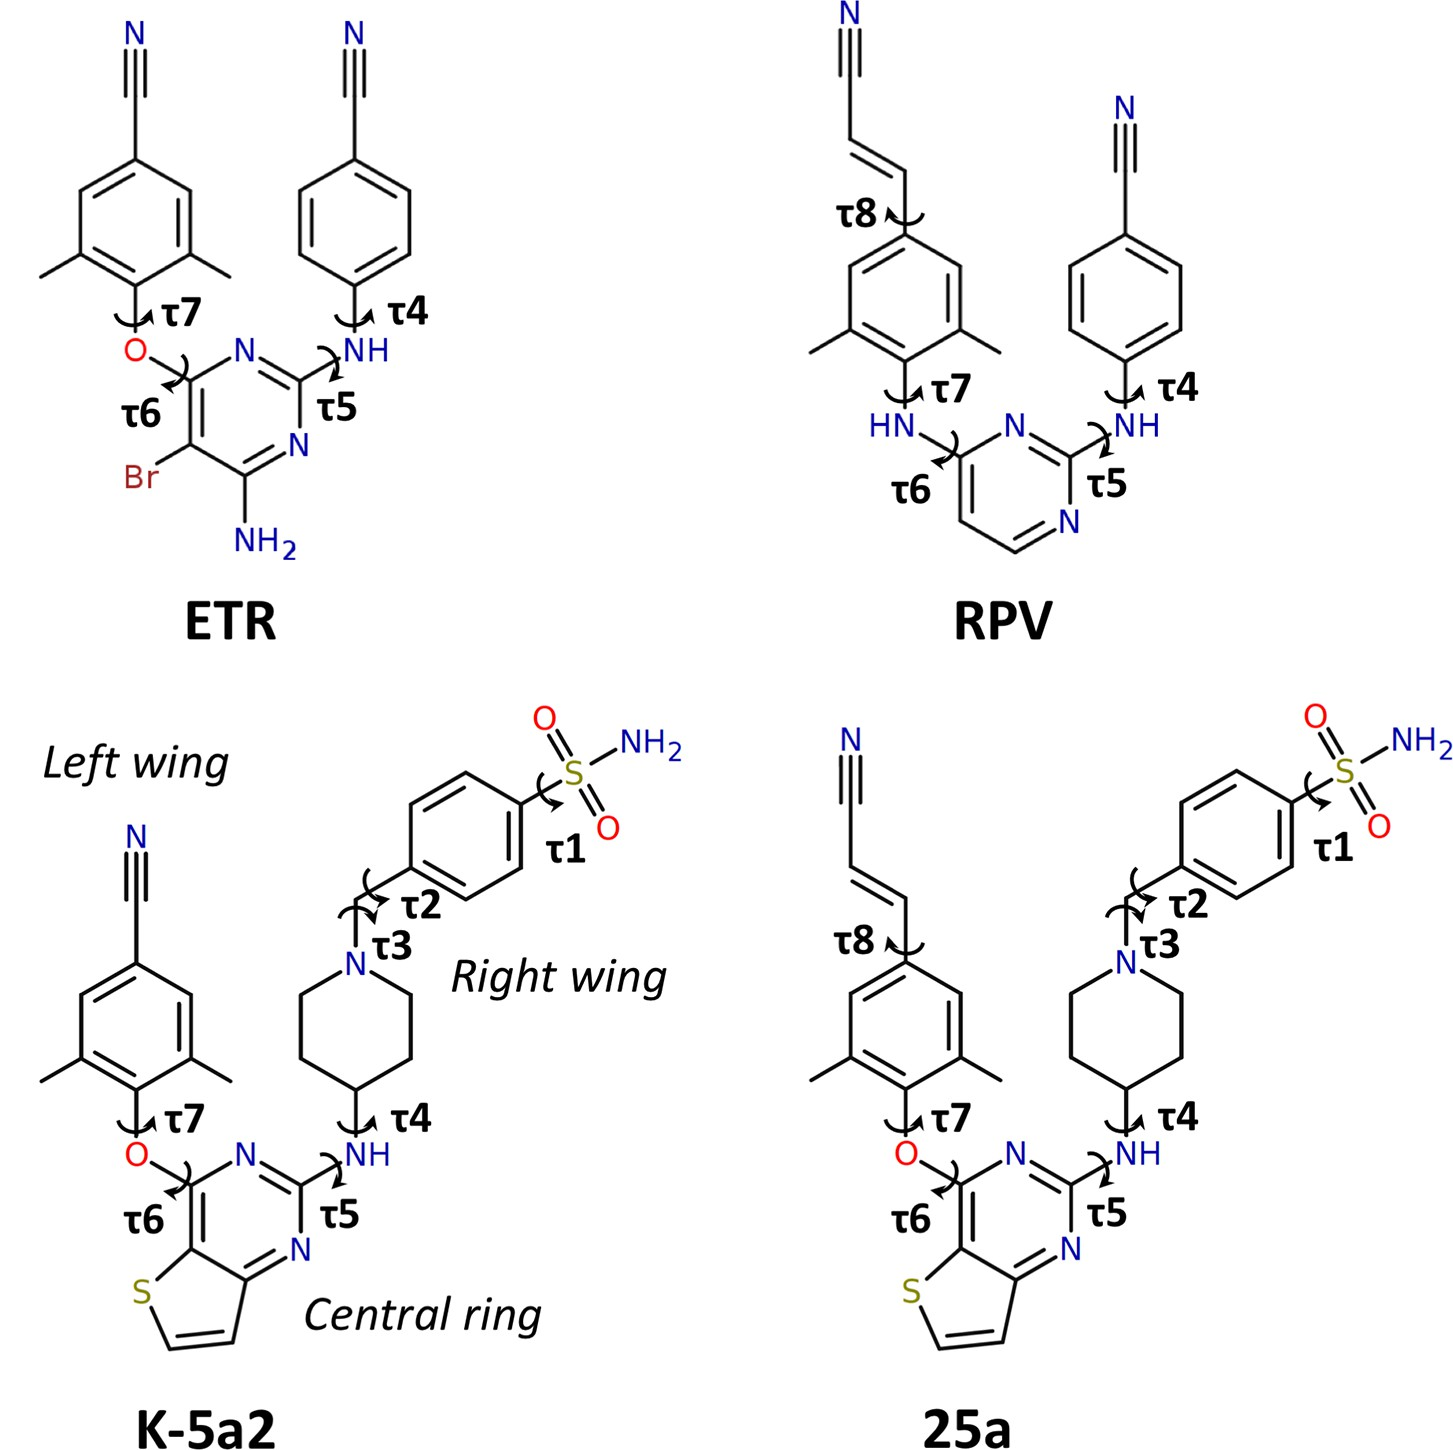 hight resolution of chemical structures of nnrtis